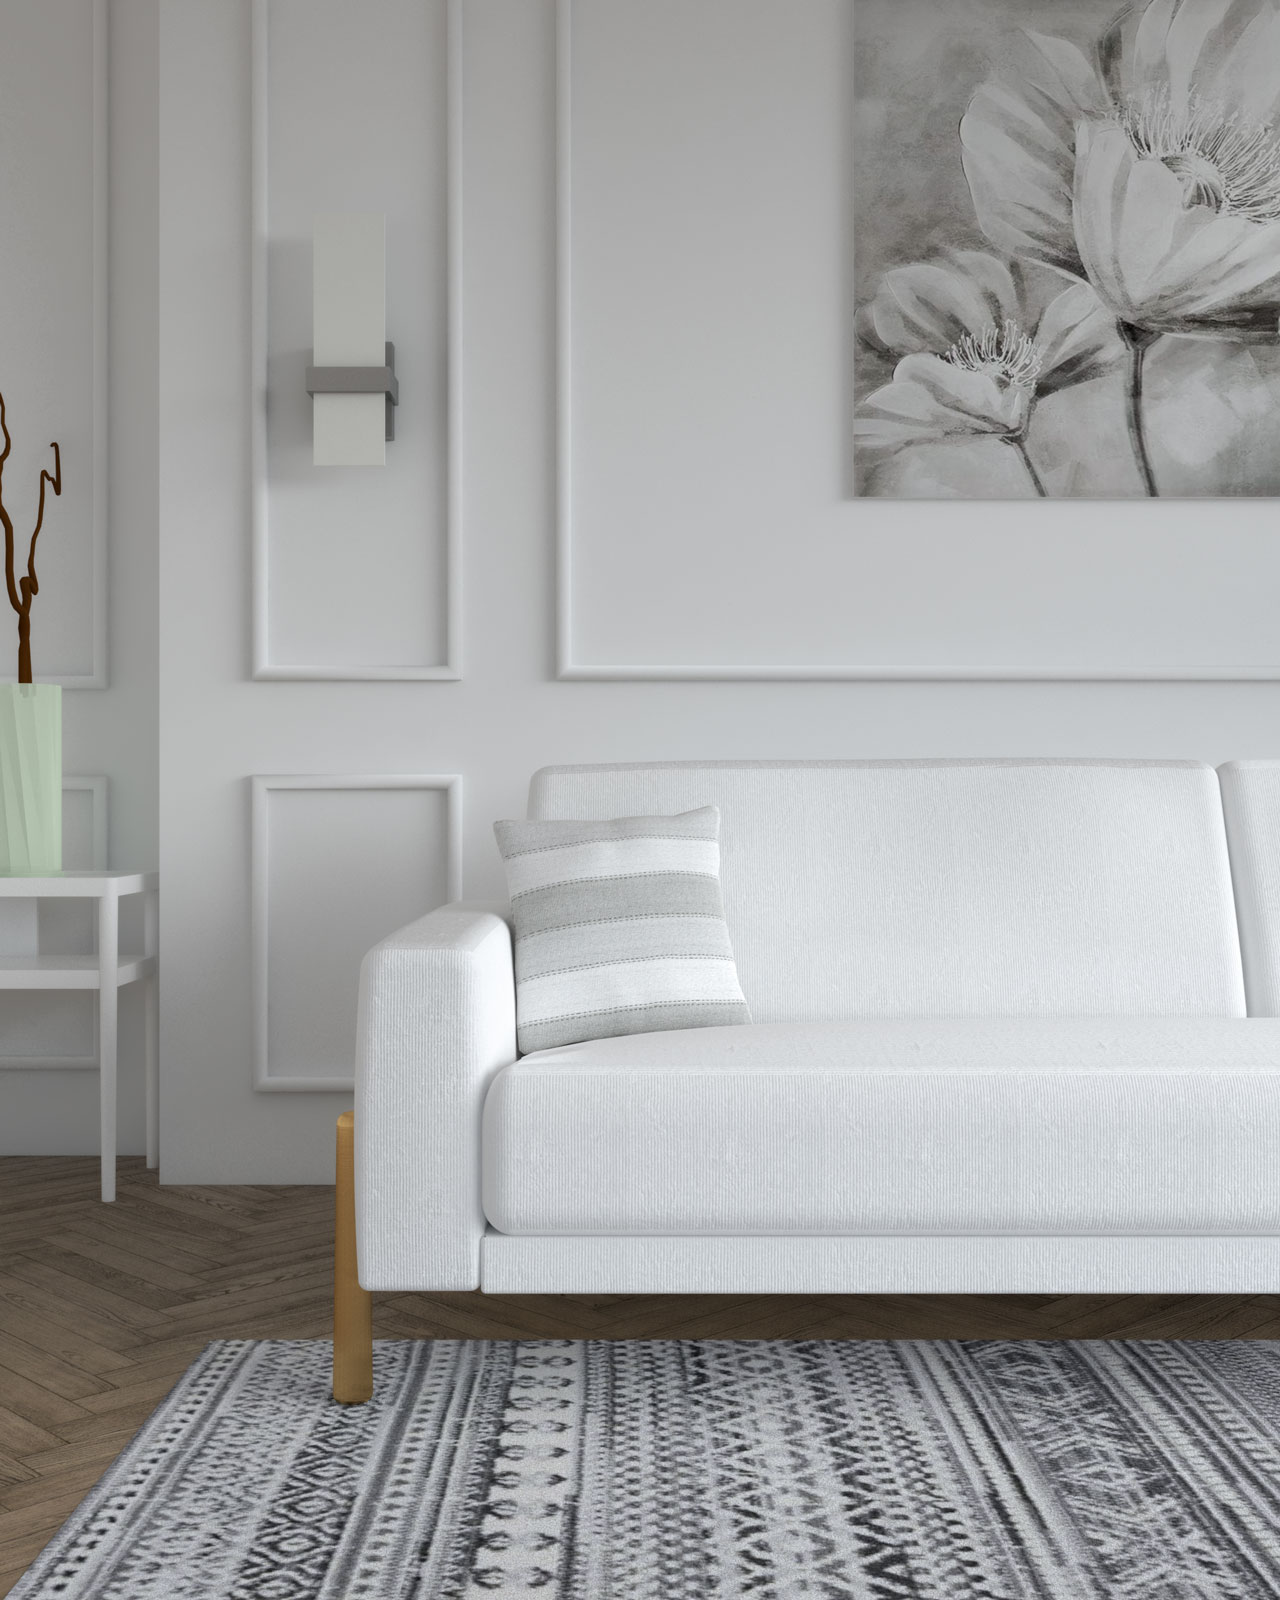 Gray and white pillow in white couch